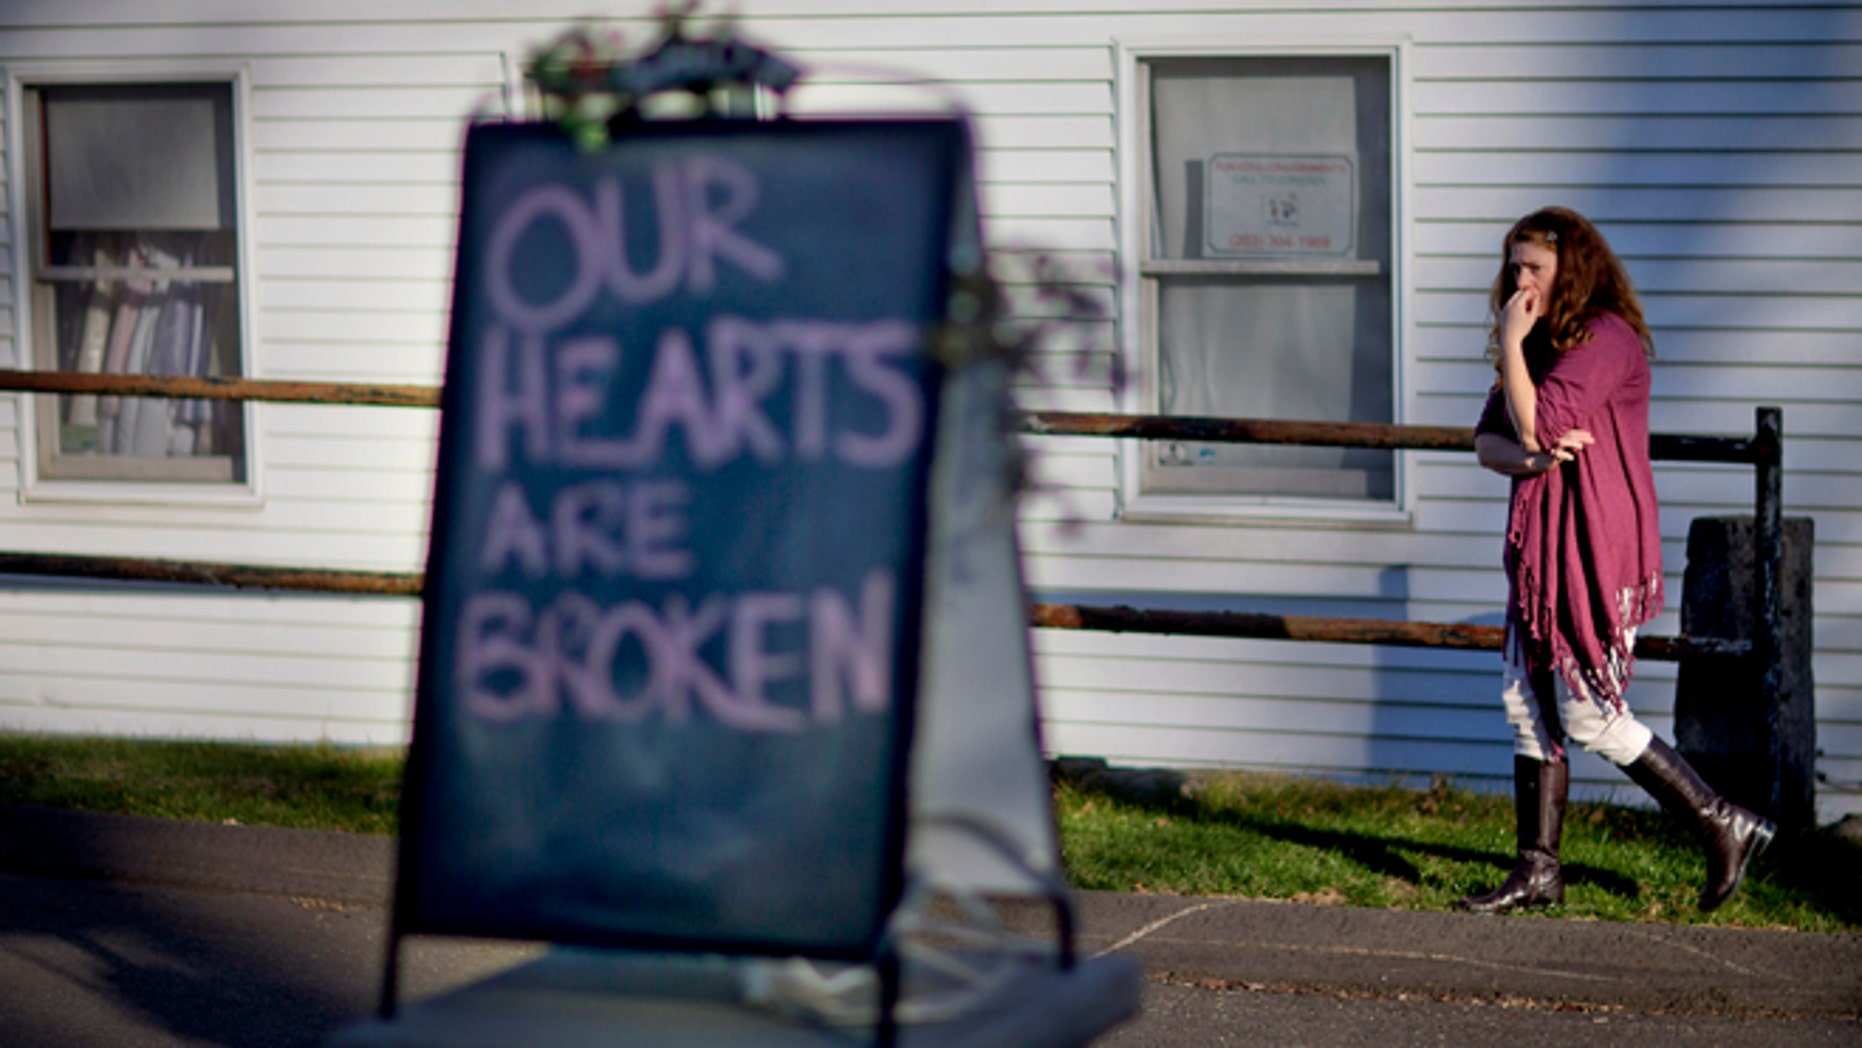 Shop owner Tamara Doherty, paces outside her store just down the road from Sandy Hook Elementary School, Saturday, Dec. 15, 2012, in Newtown, Conn. The massacre of 26 children and adults at Sandy Hook Elementary school elicited horror and soul-searching around the world even as it raised more basic questions about why the gunman, 20-year-old Adam Lanza, would have been driven to such a crime and how he chose his victims. (AP Photo/David Goldman)